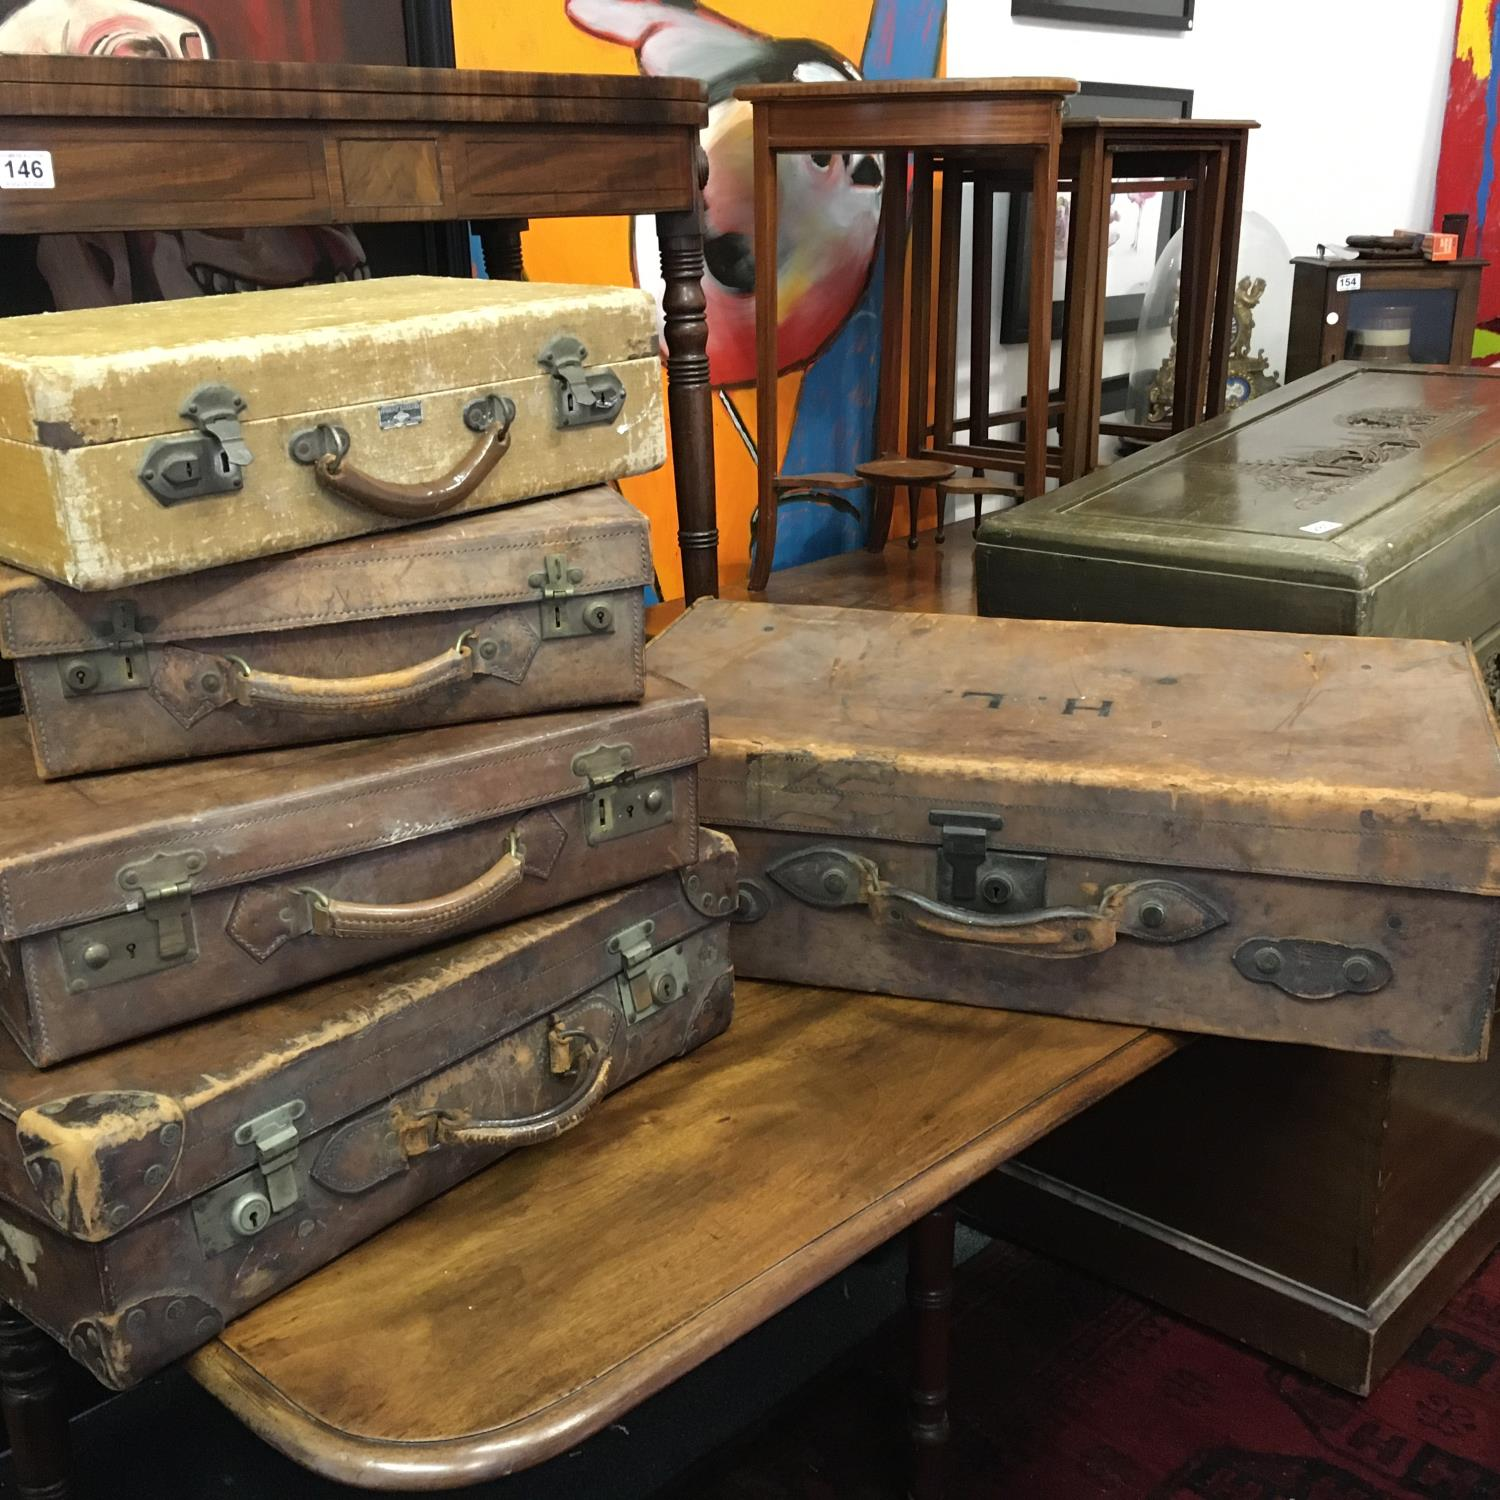 4 x matching antique leather suitcases of graduating size in what appears to be a set of 4, and 1